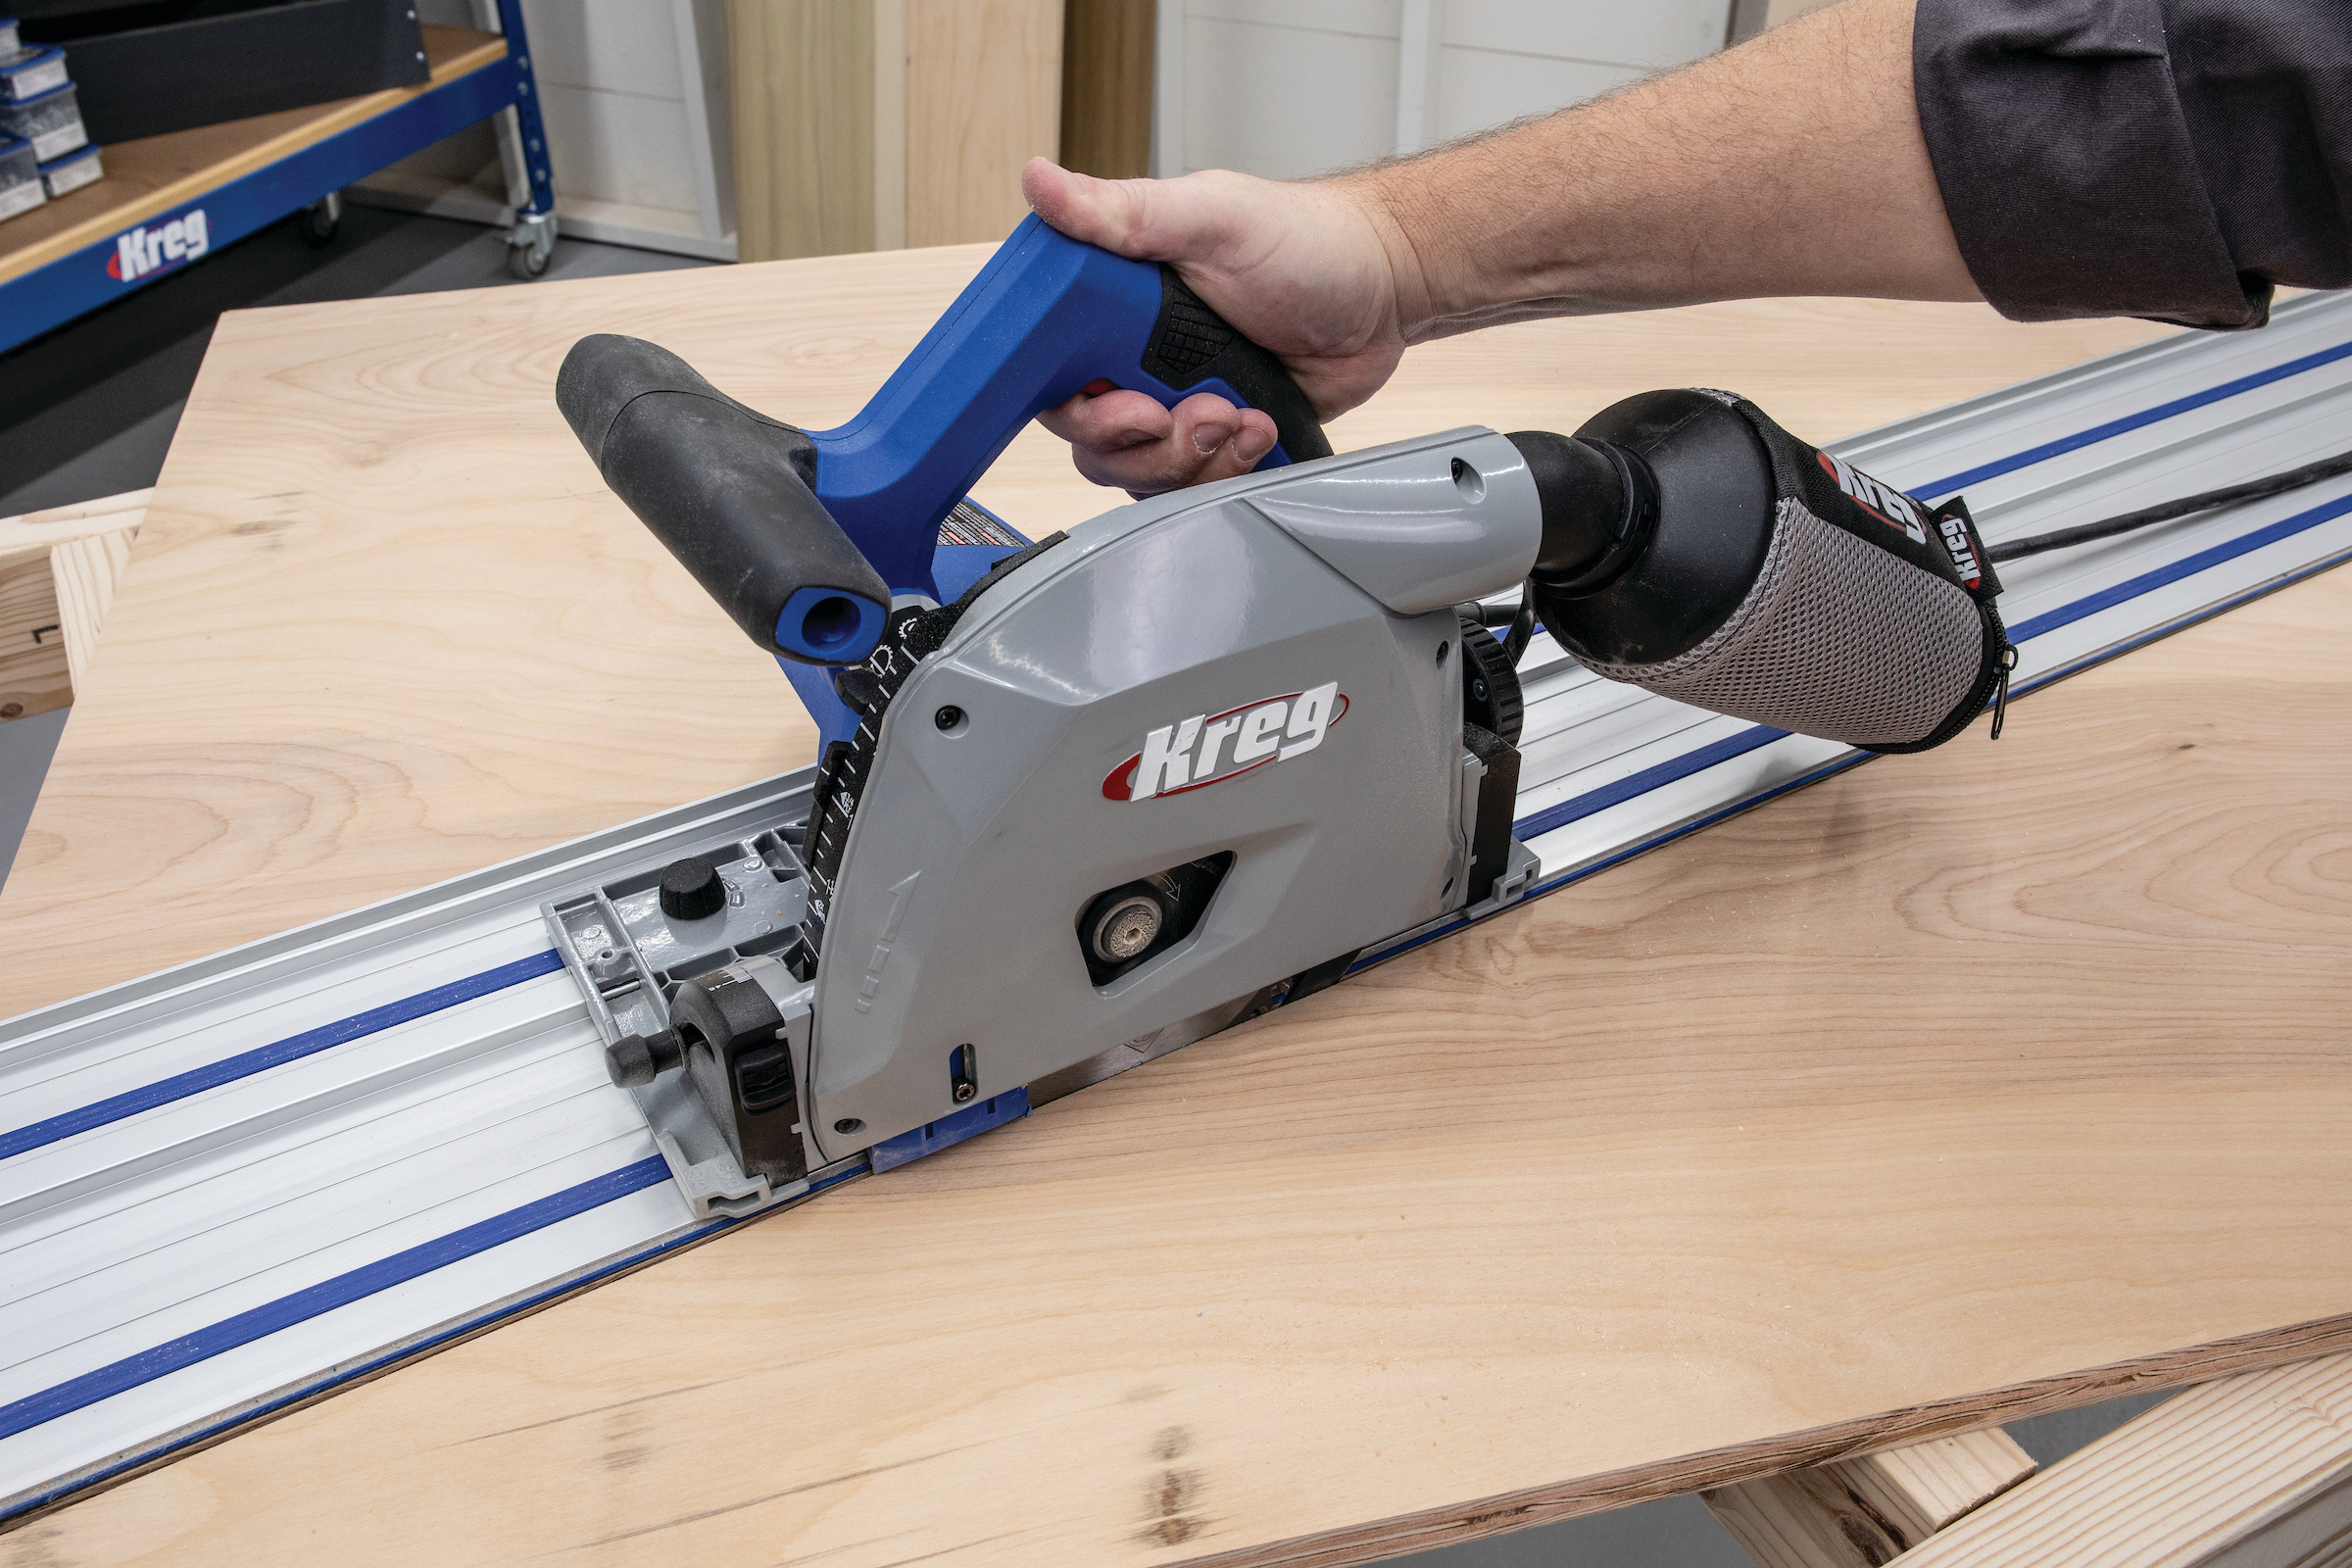 Plunge Saw Vs Table Saw